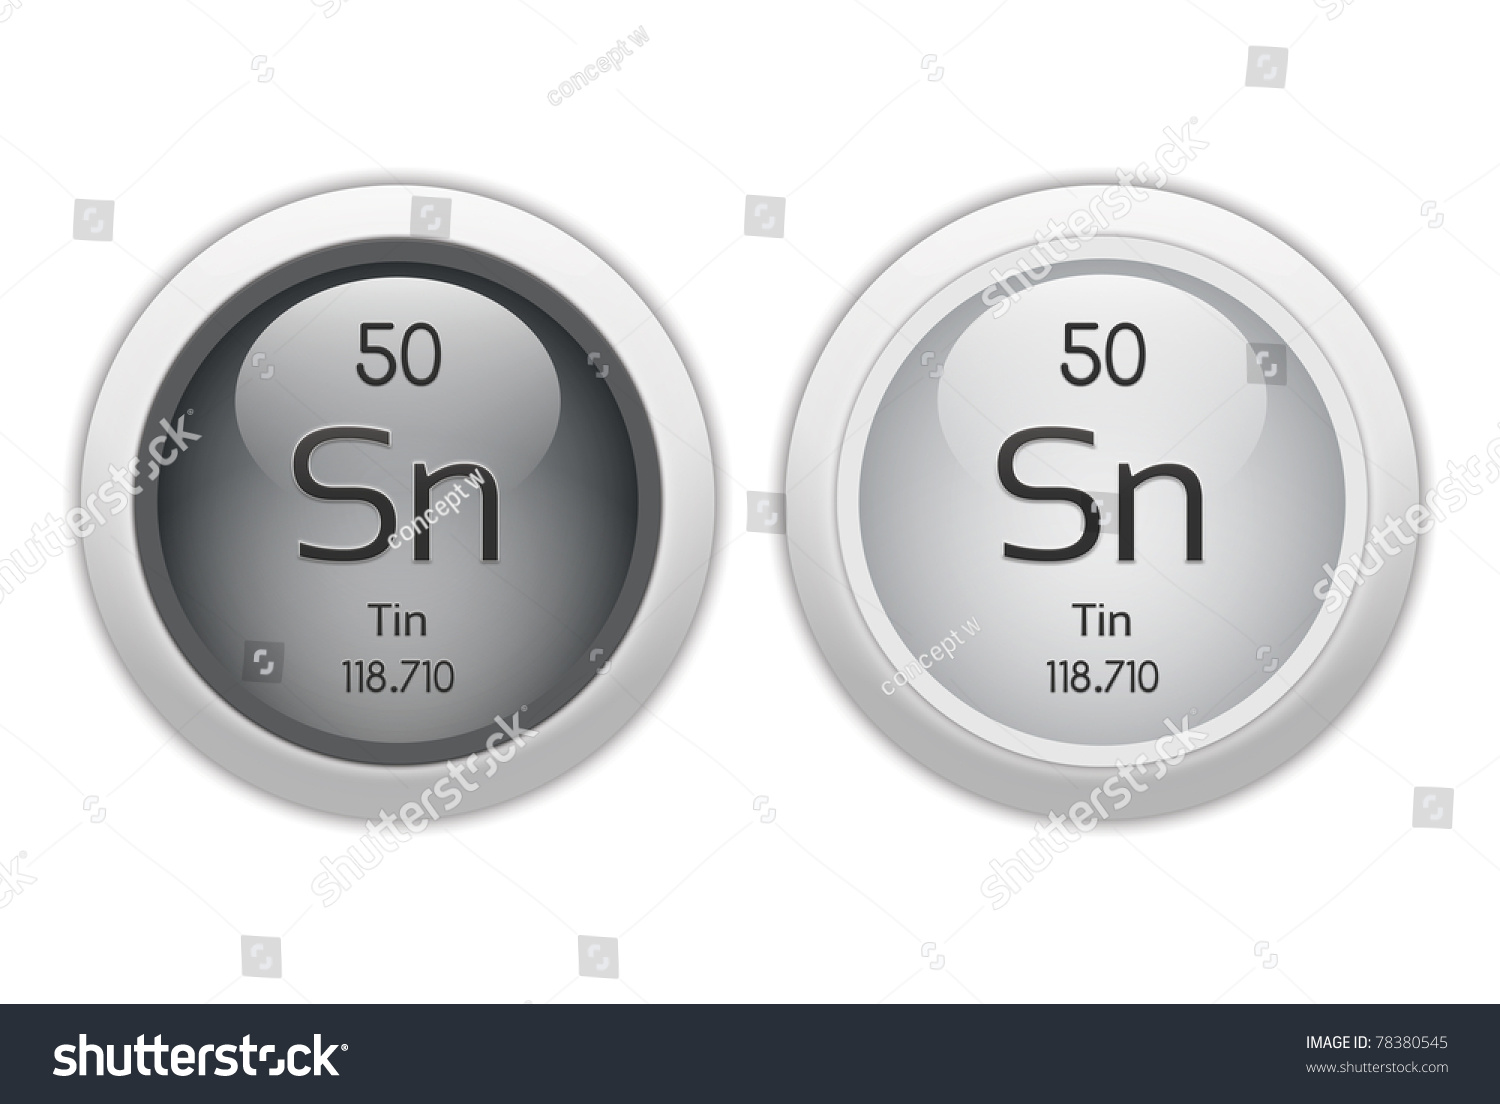 Tin Two Web Buttons Chemical Element Stock Illustration 78380545